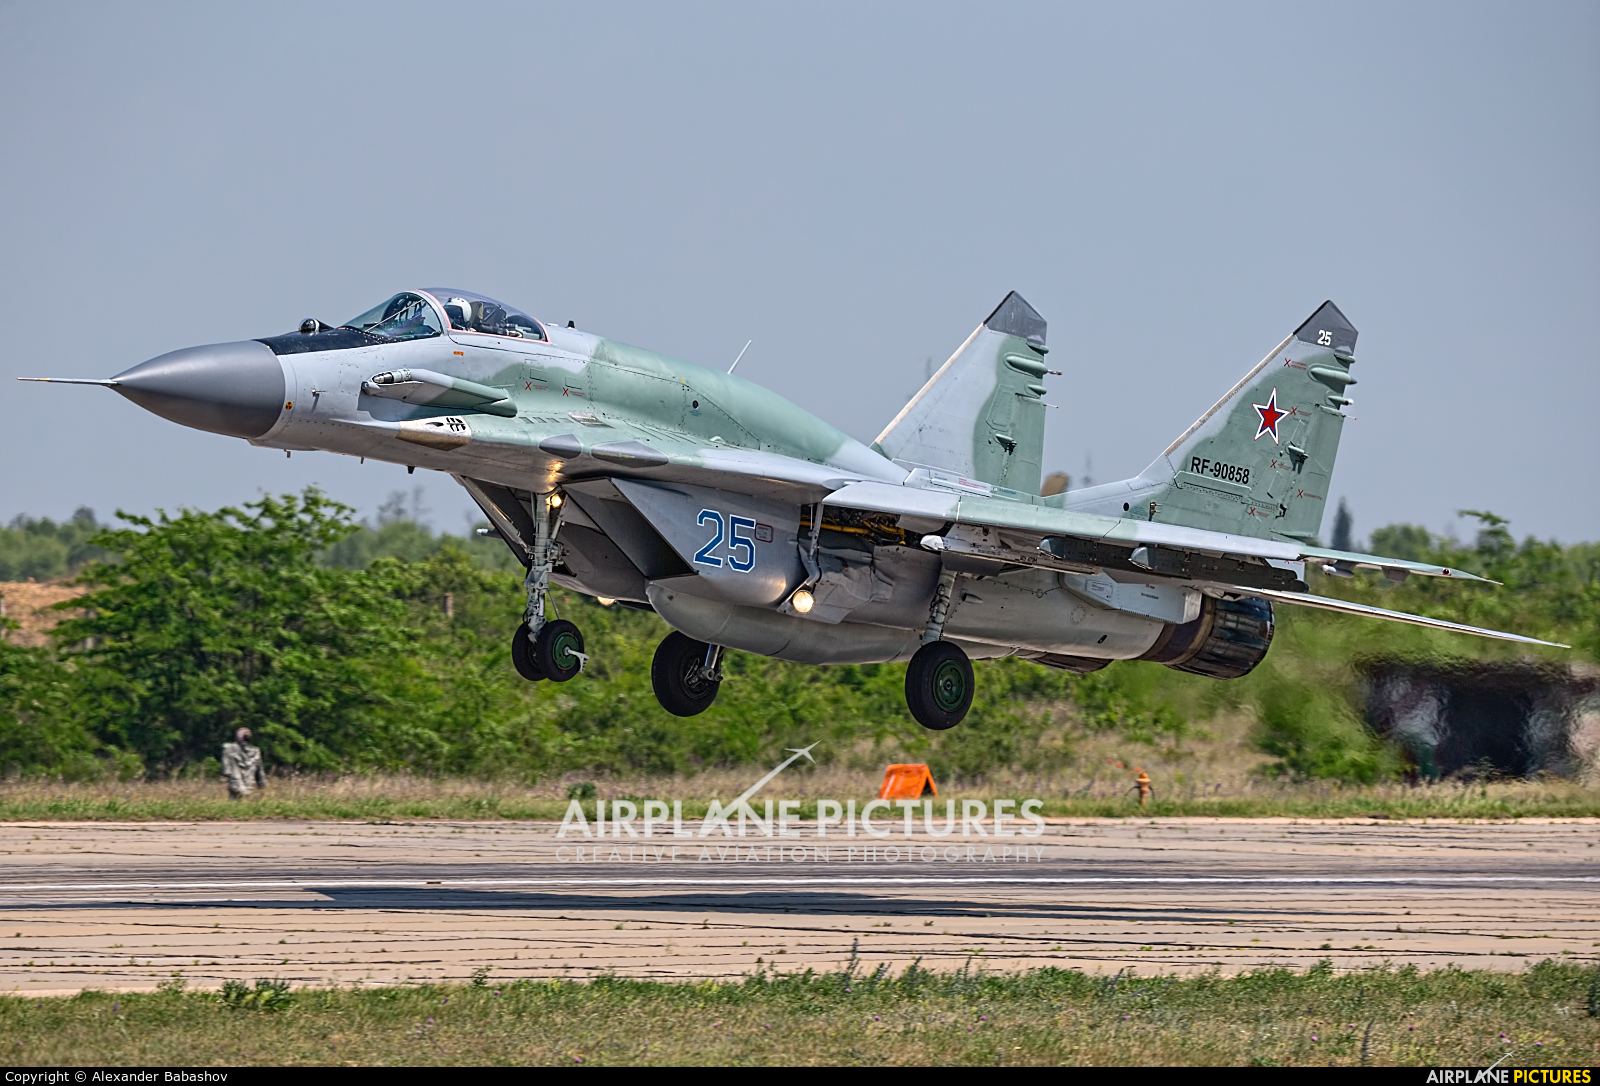 Russia - Air Force RF-90858 aircraft at Undisclosed Location